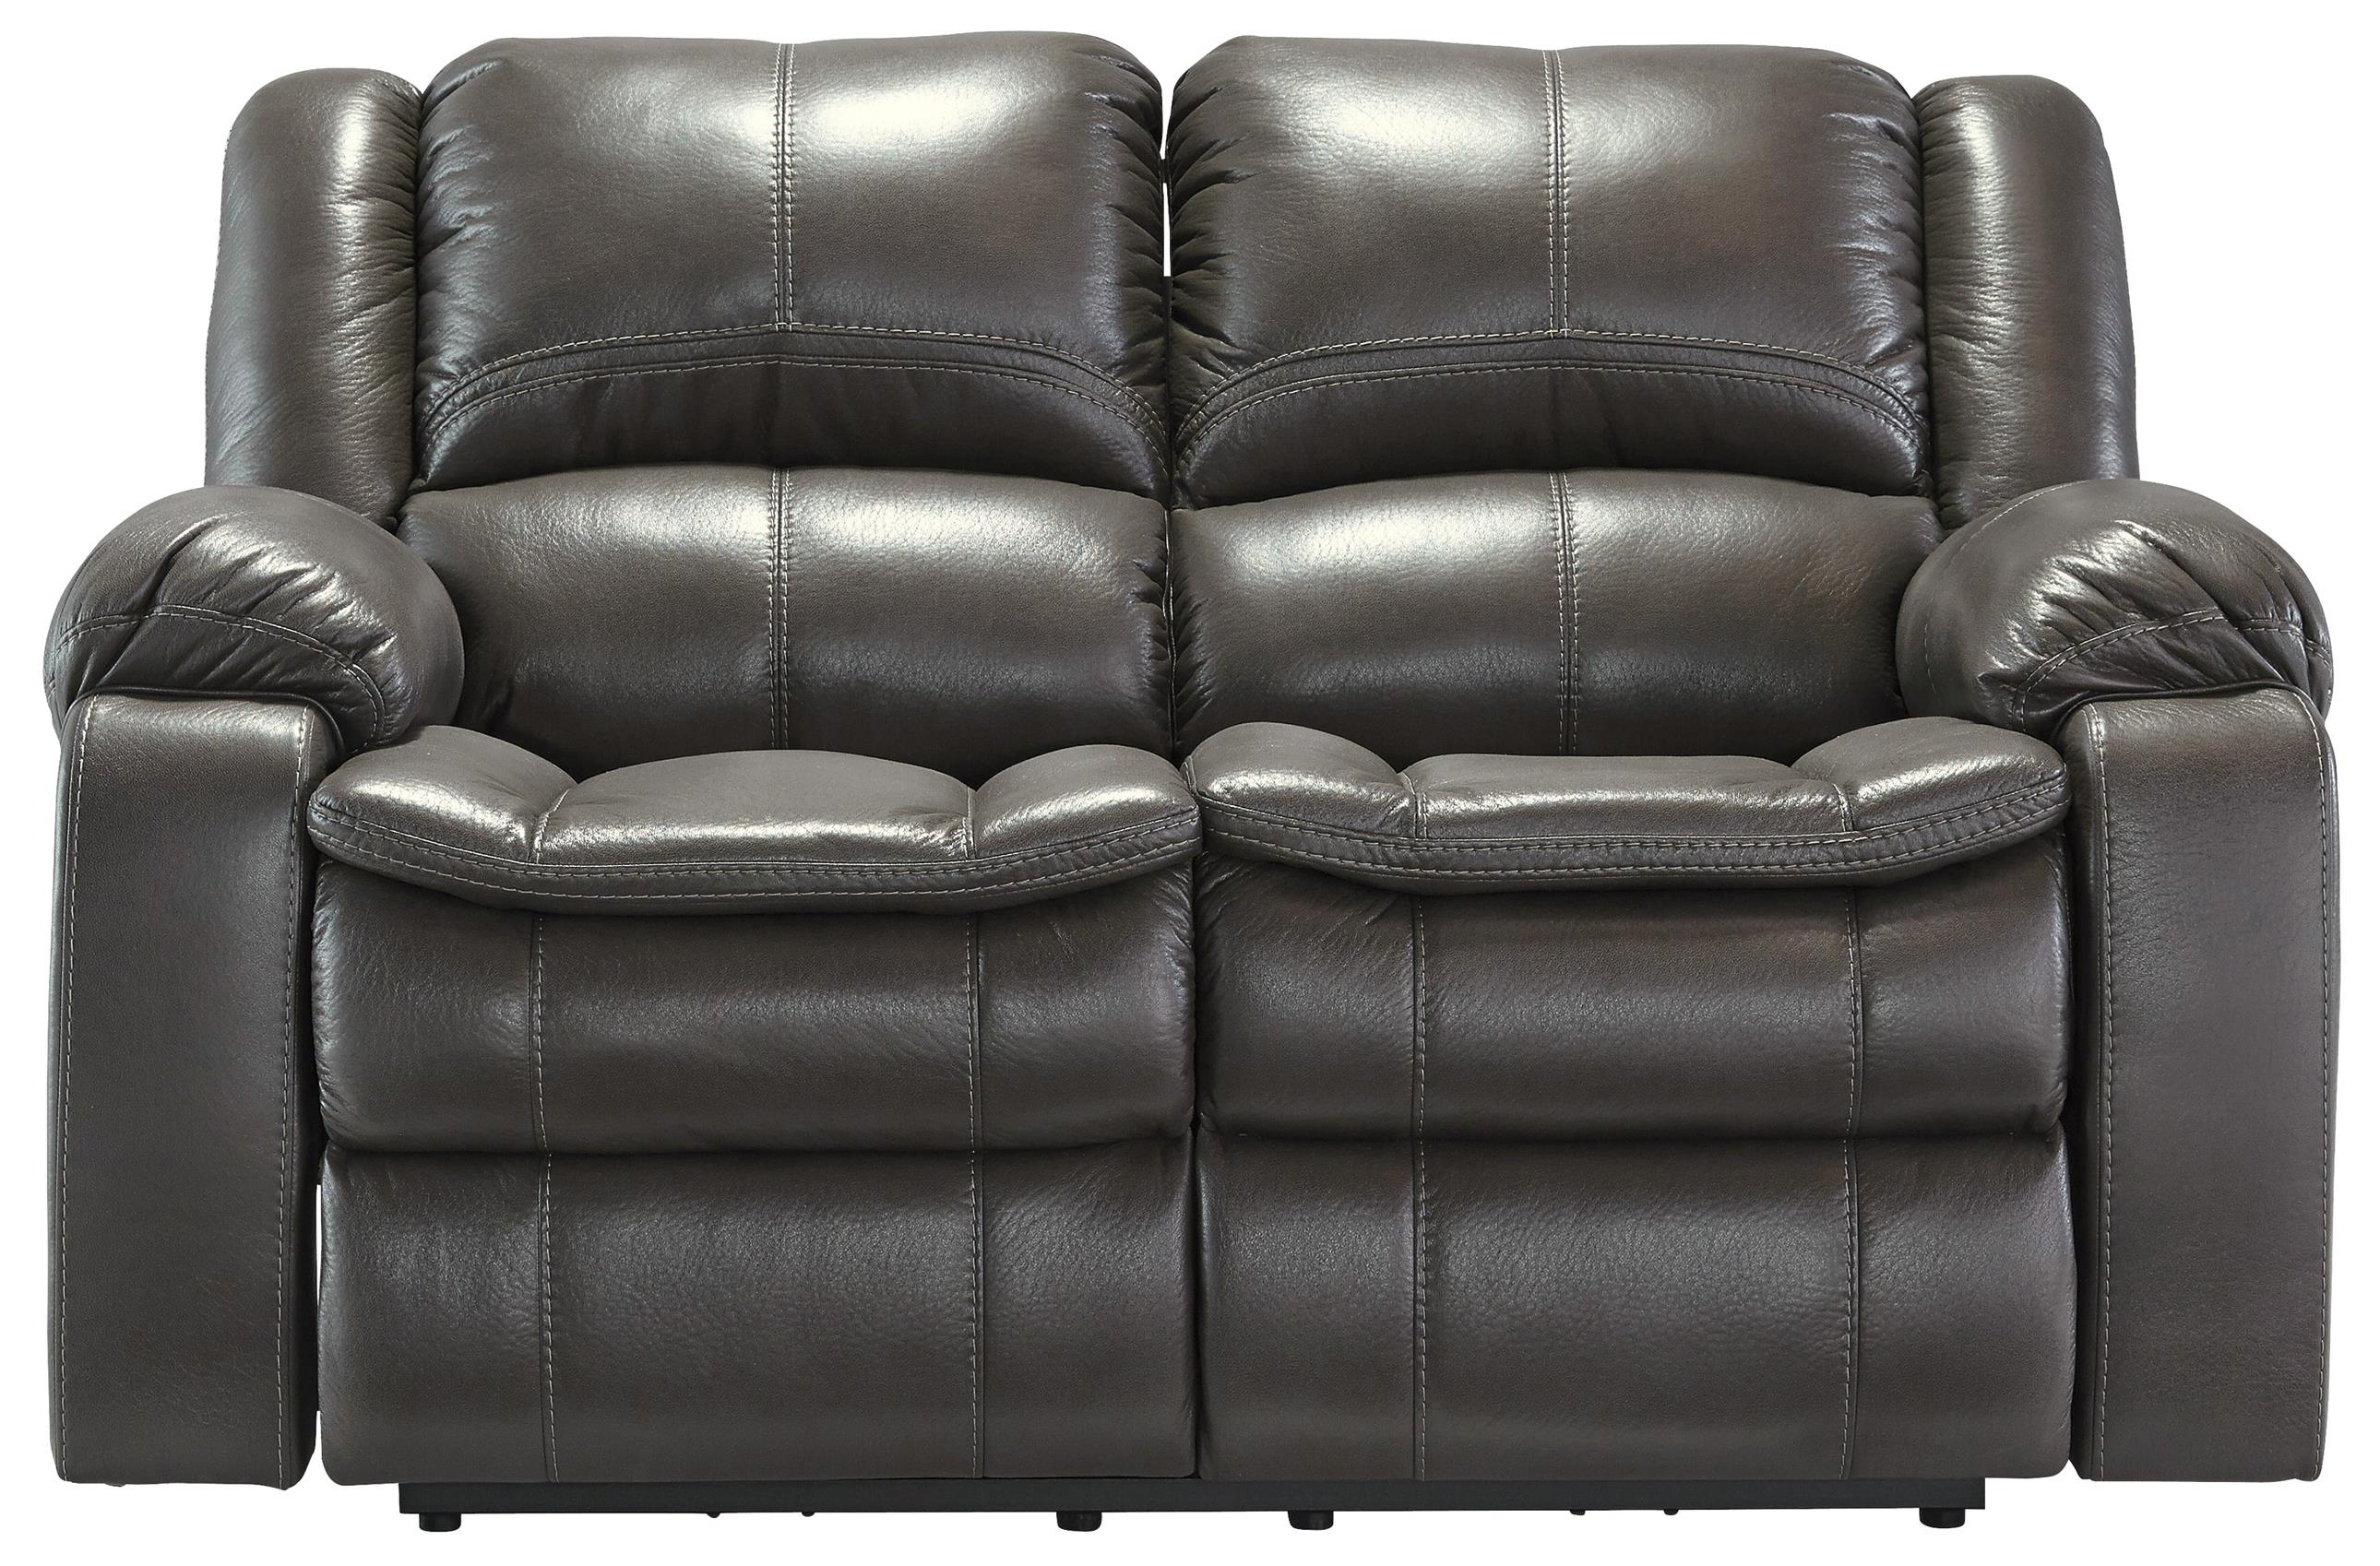 Faux Leather Reclining Power Loveseat With Contoured Pillow Top Seats By Signature Design By